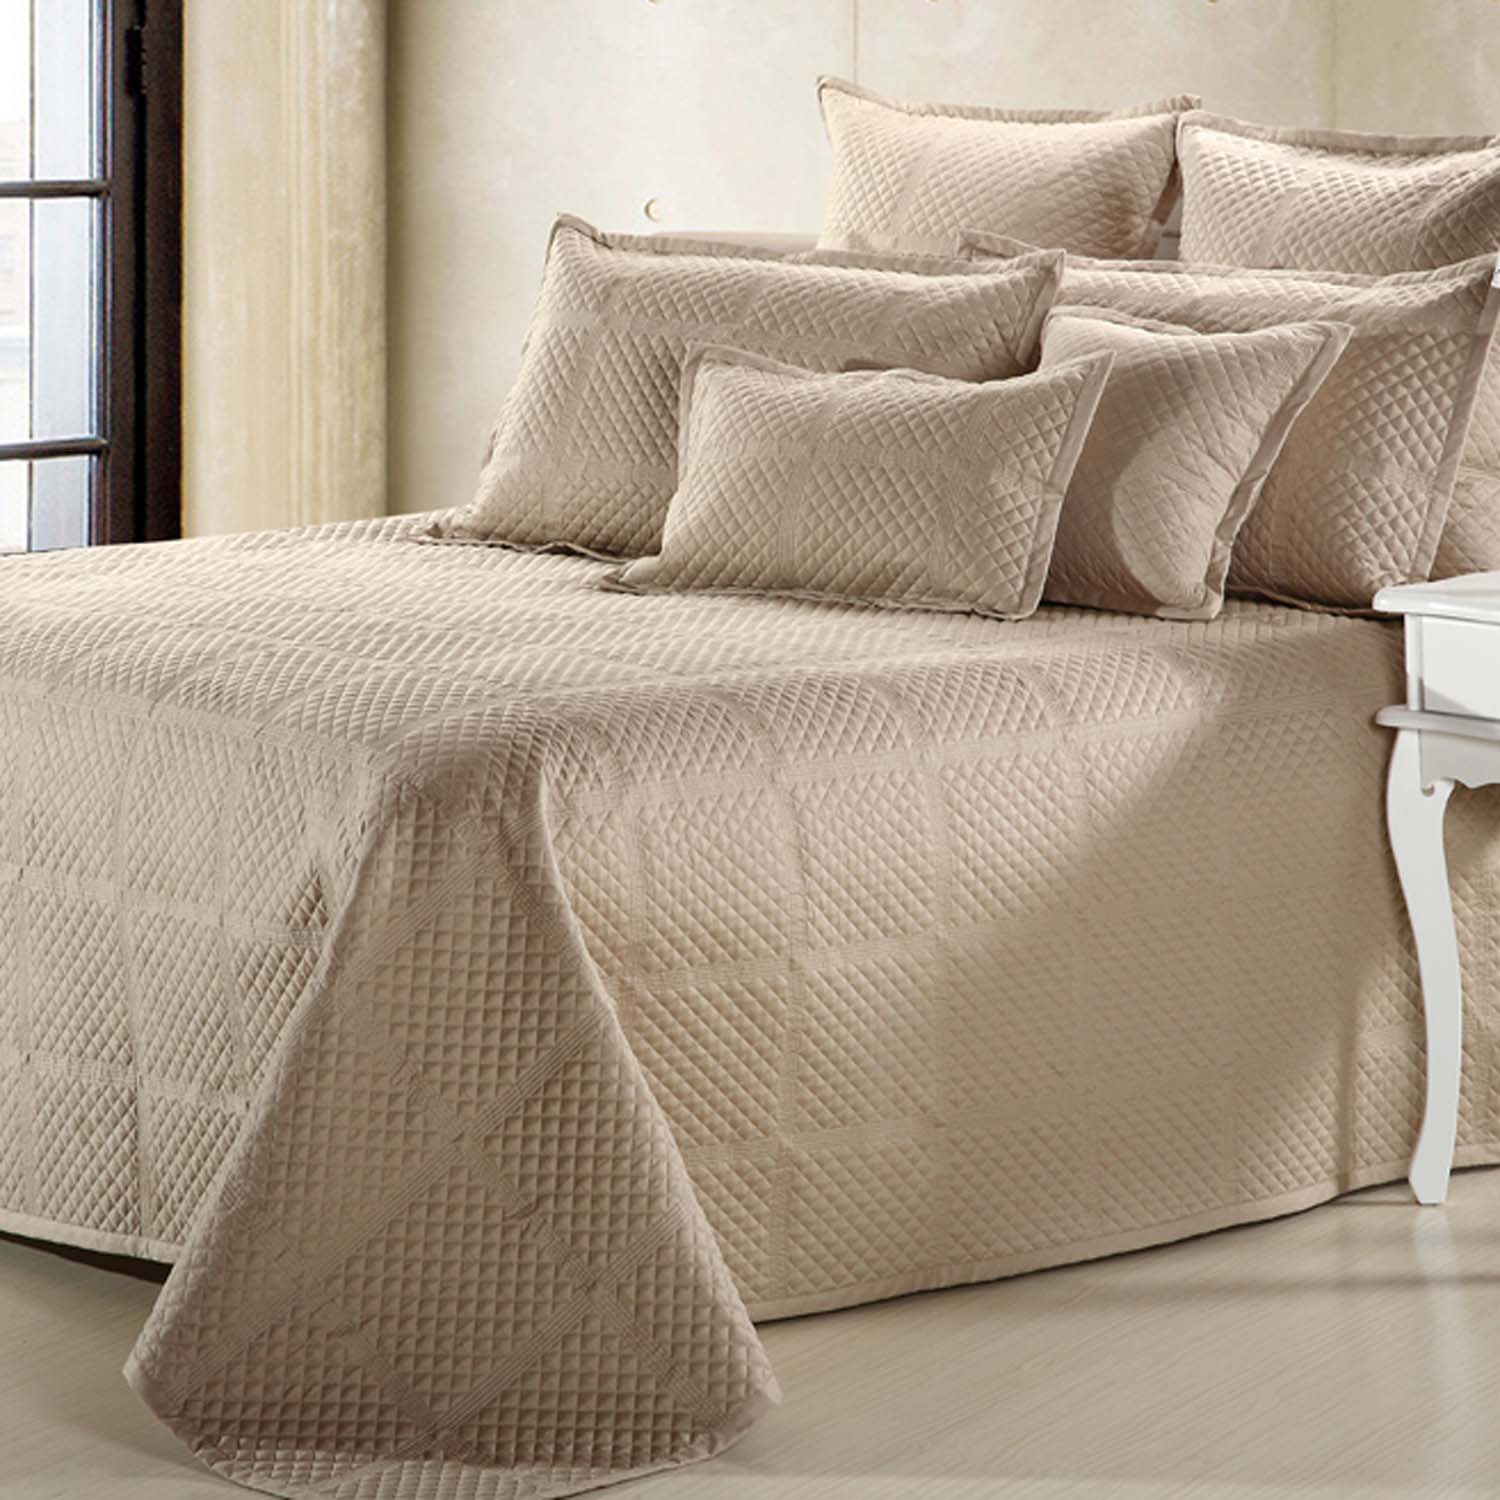 Textured Patterns Grey Coverlet With Pile Of Textured Patterns Grey Pillows  White Classic Console